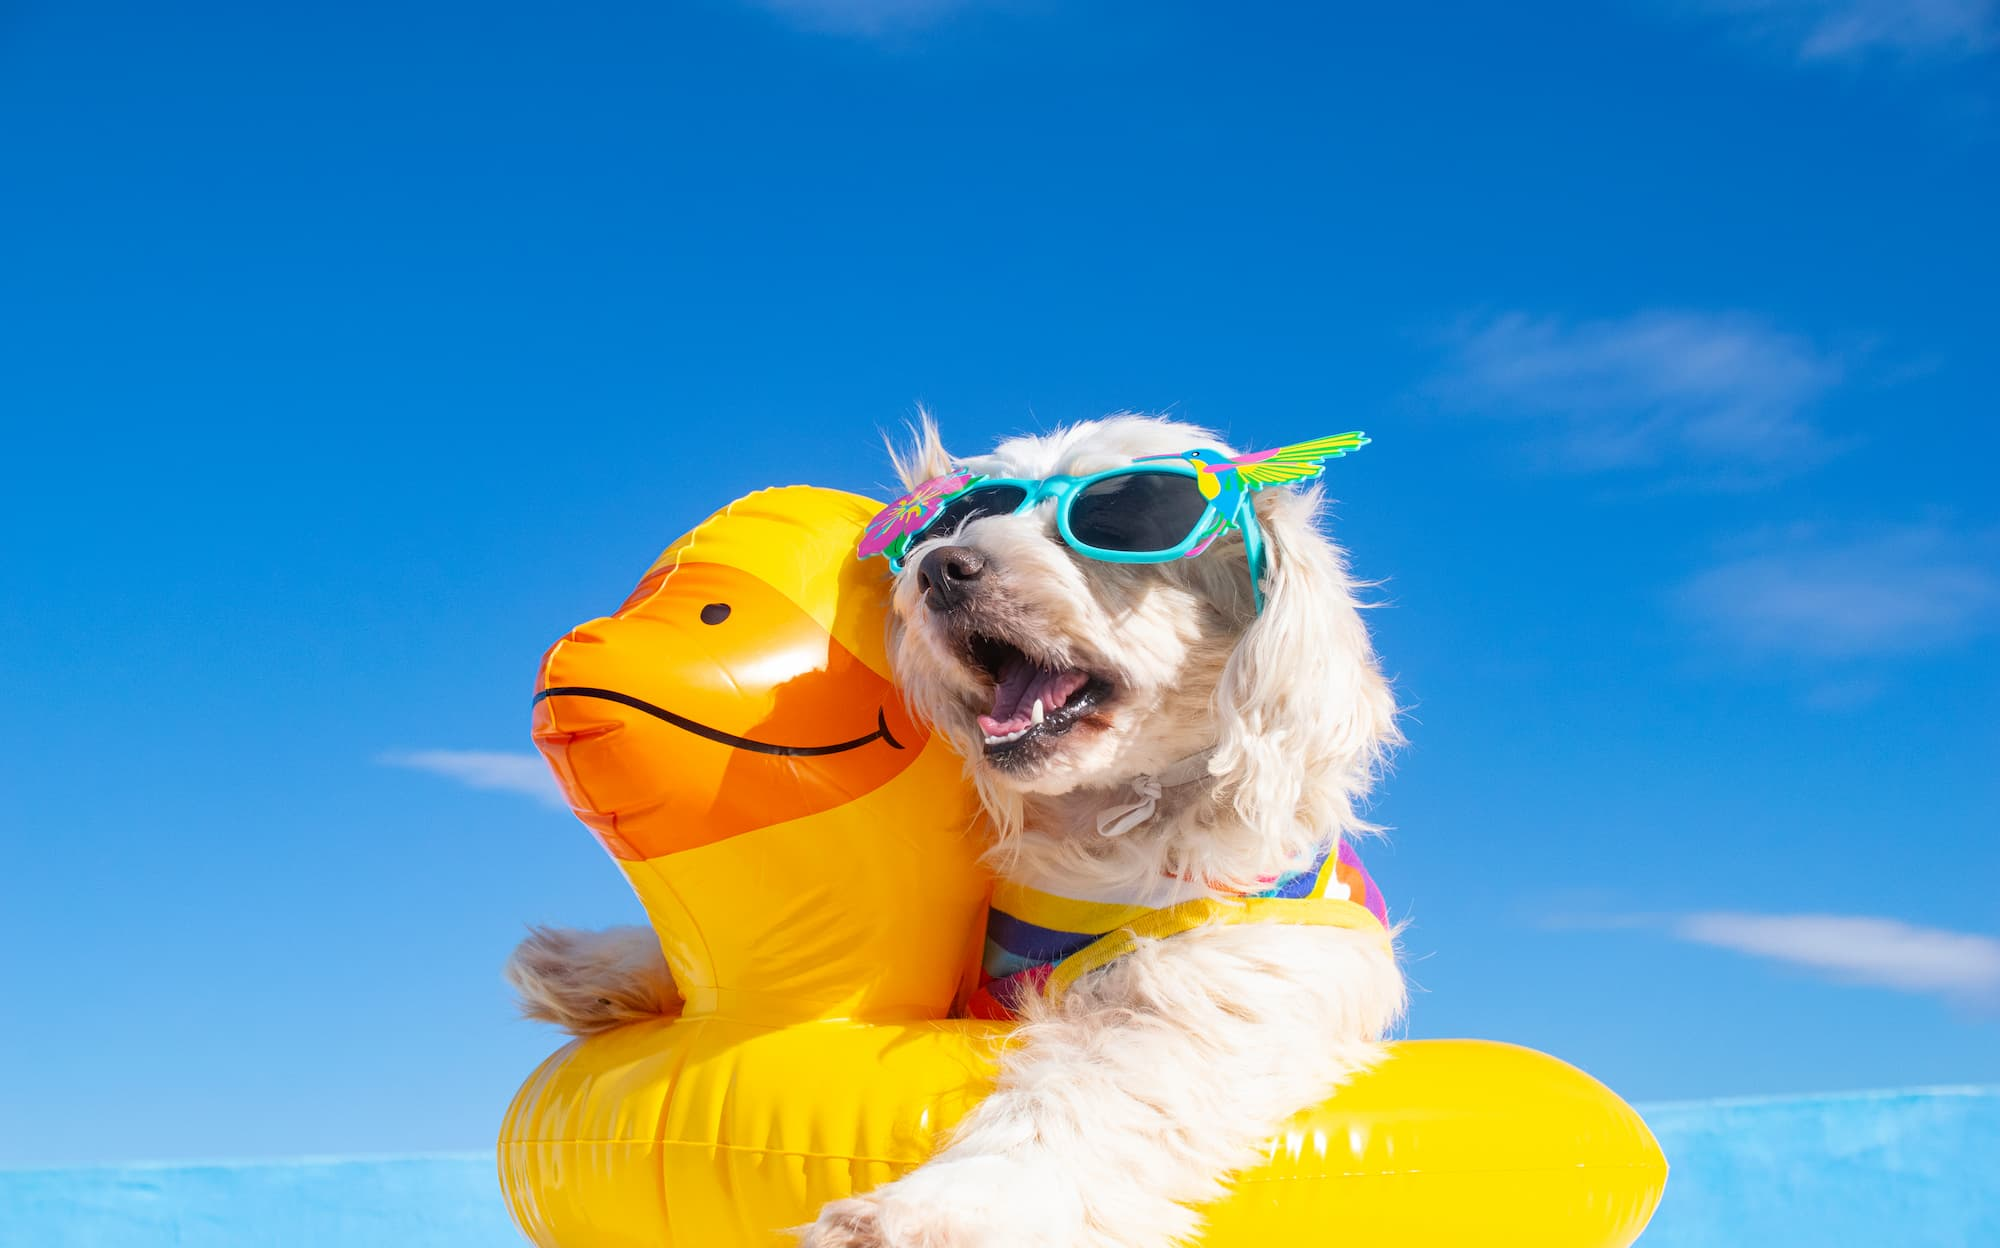 dog against skyline wearing sunglasses and a pool floatie